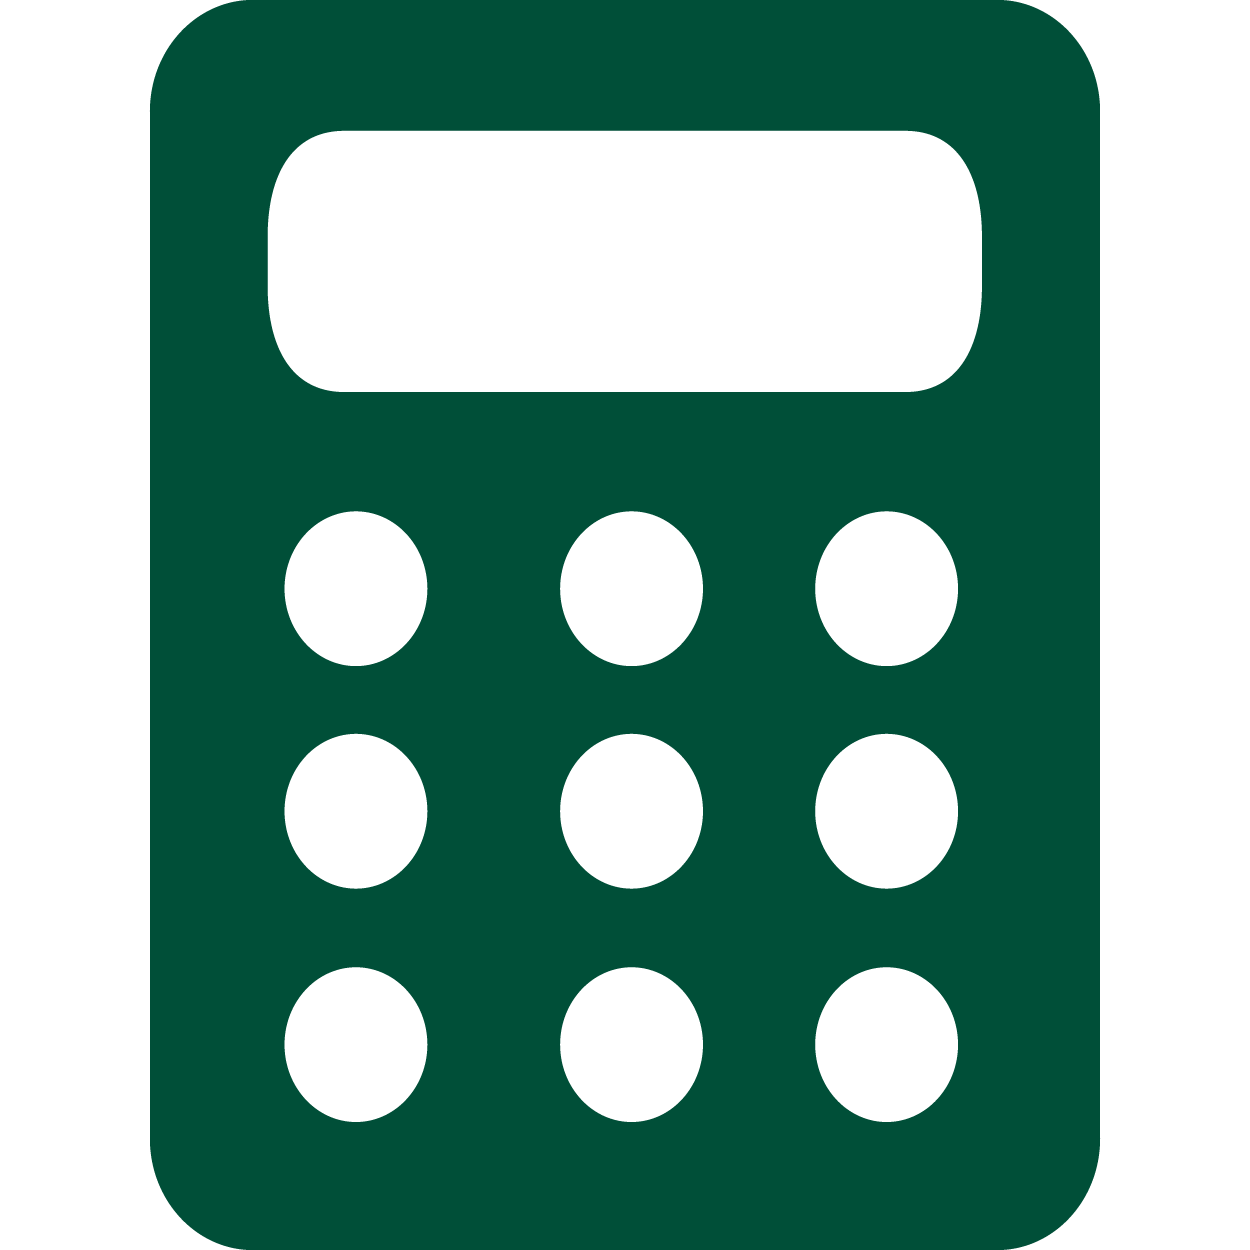 Calculators Image